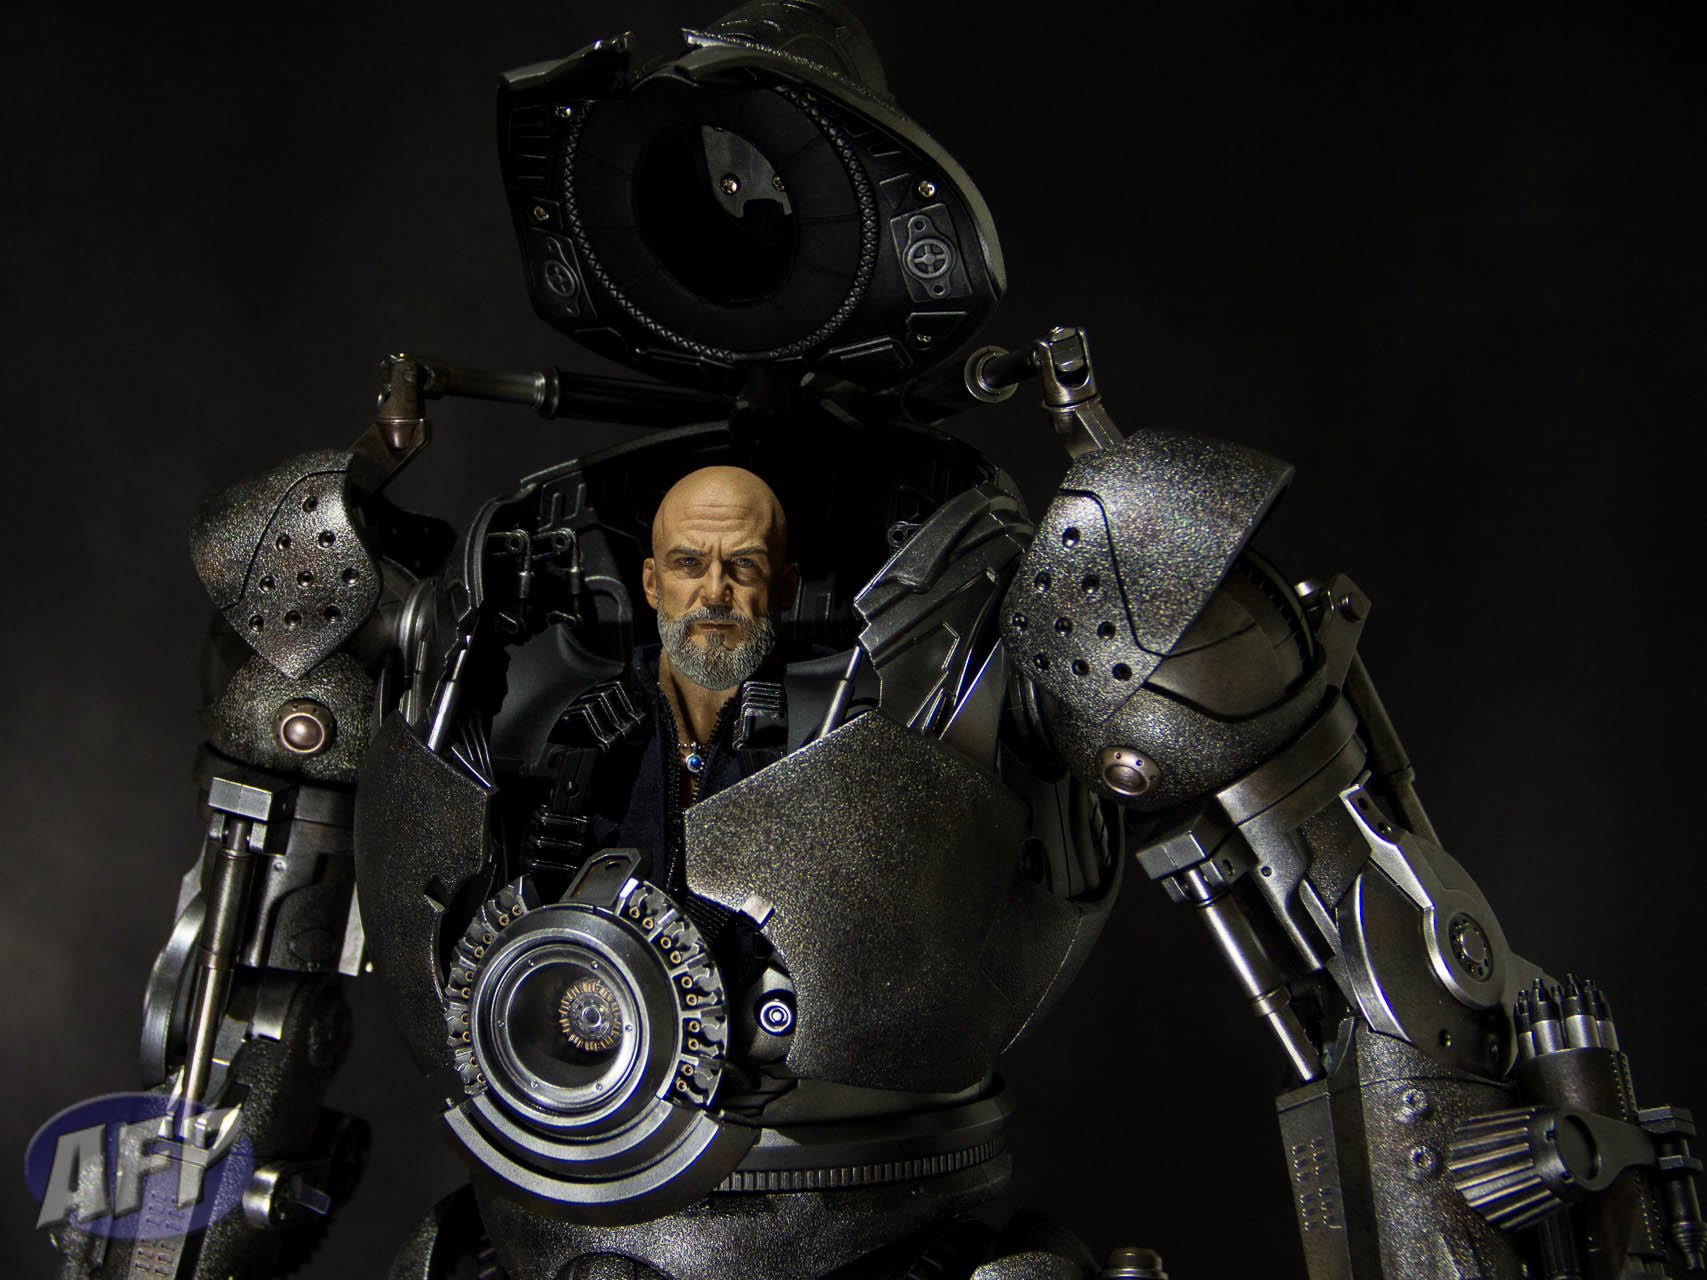 http://www.actionfigurepics.com/wp-content/uploads/2013/02/Hot-Toys-Iron-Monger-7-of-8.jpg